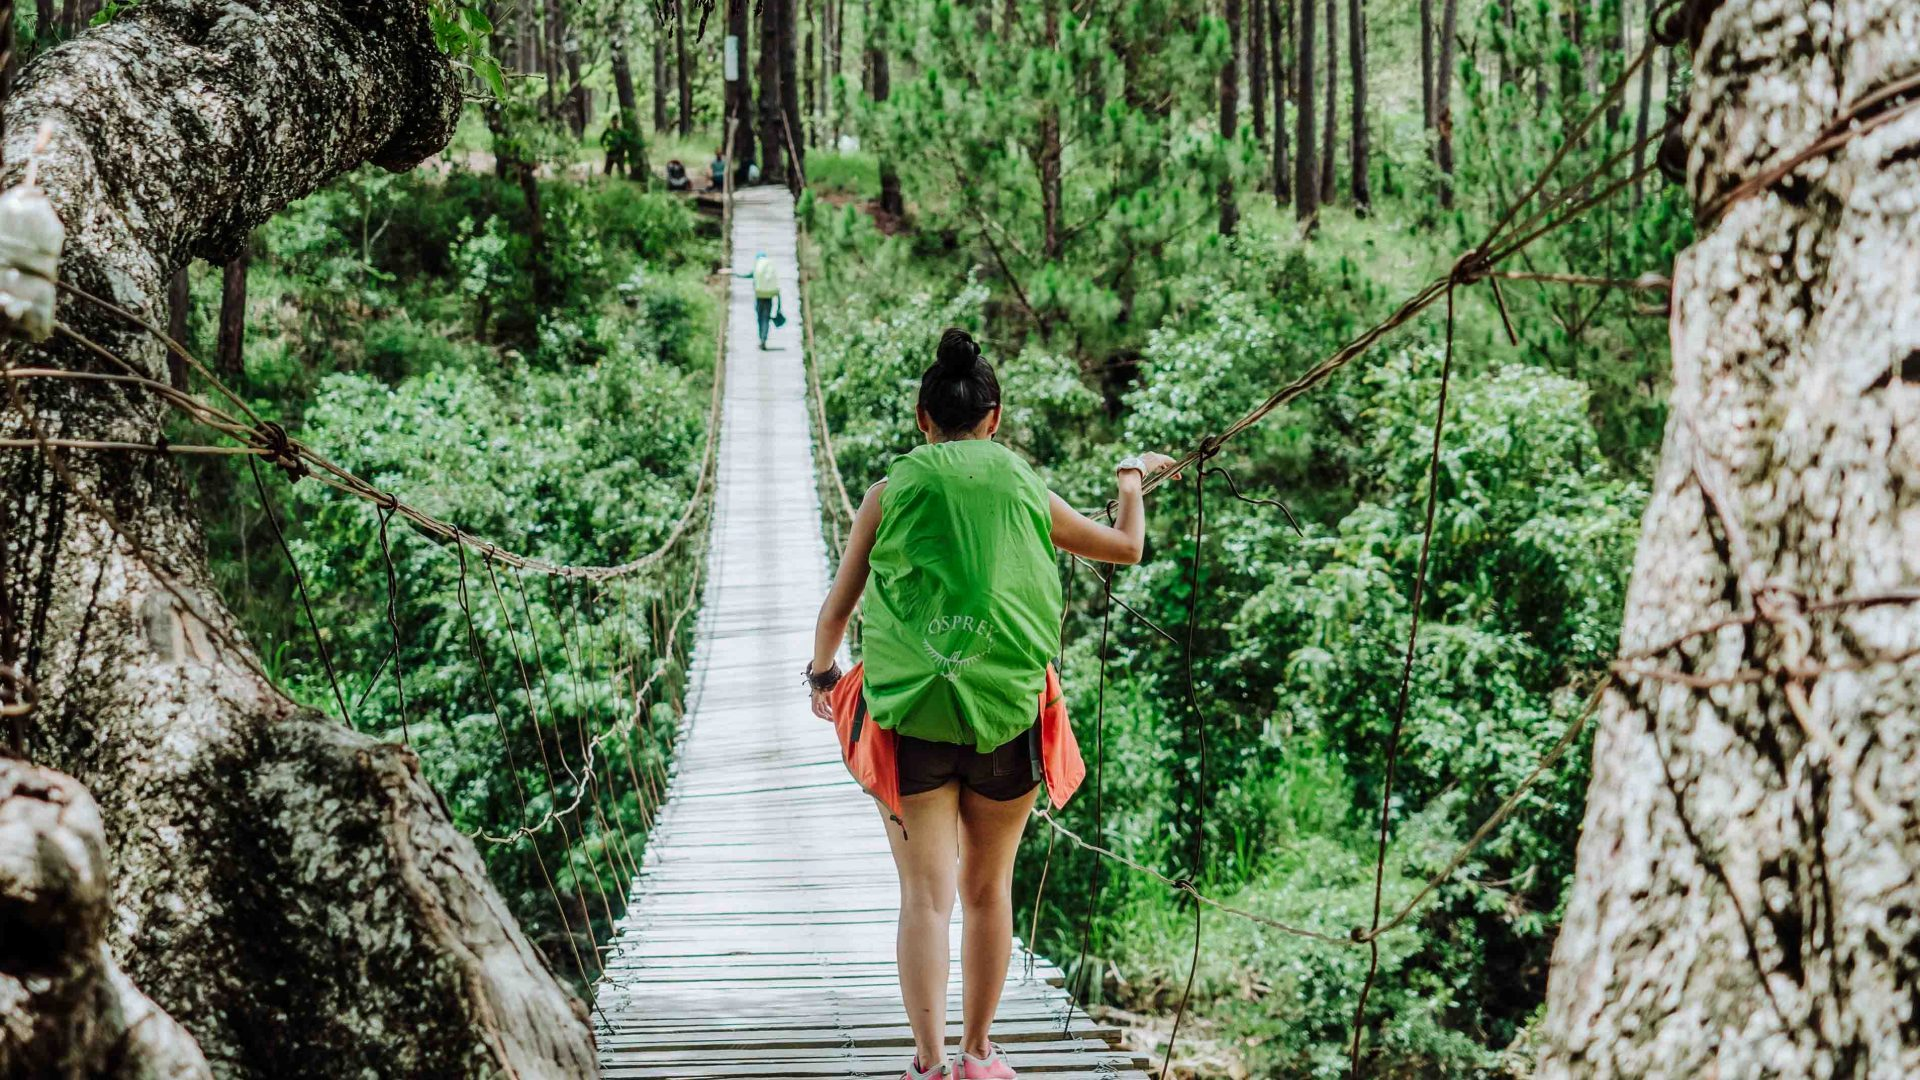 A woman hikes through the lush, verdant forests around Da Lat in Vietnam's Central Highlands.